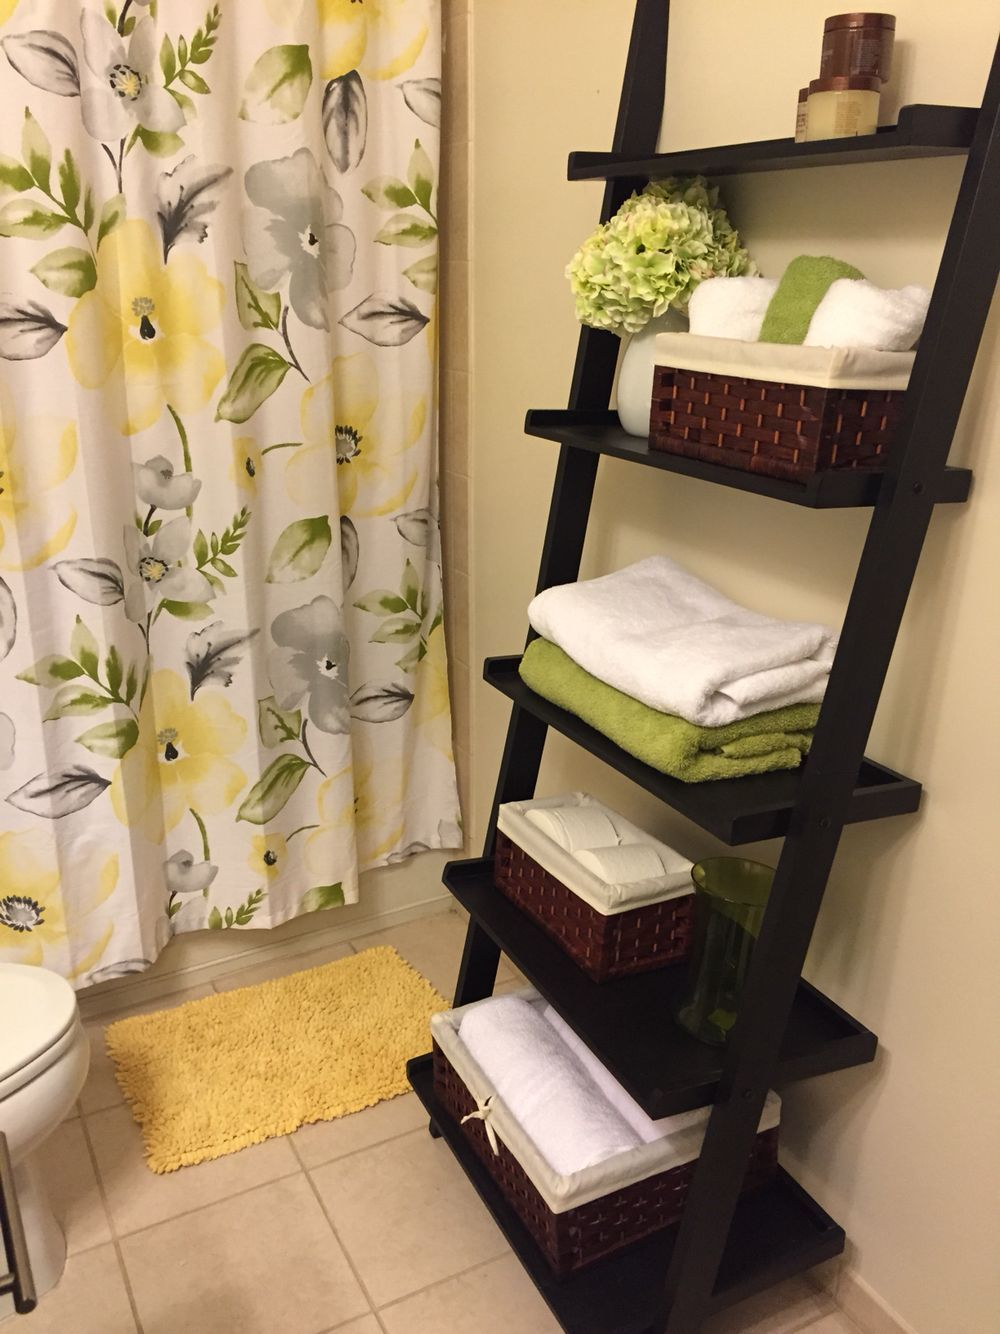 I got this leaning ladder shelf for my bathroom and itus been